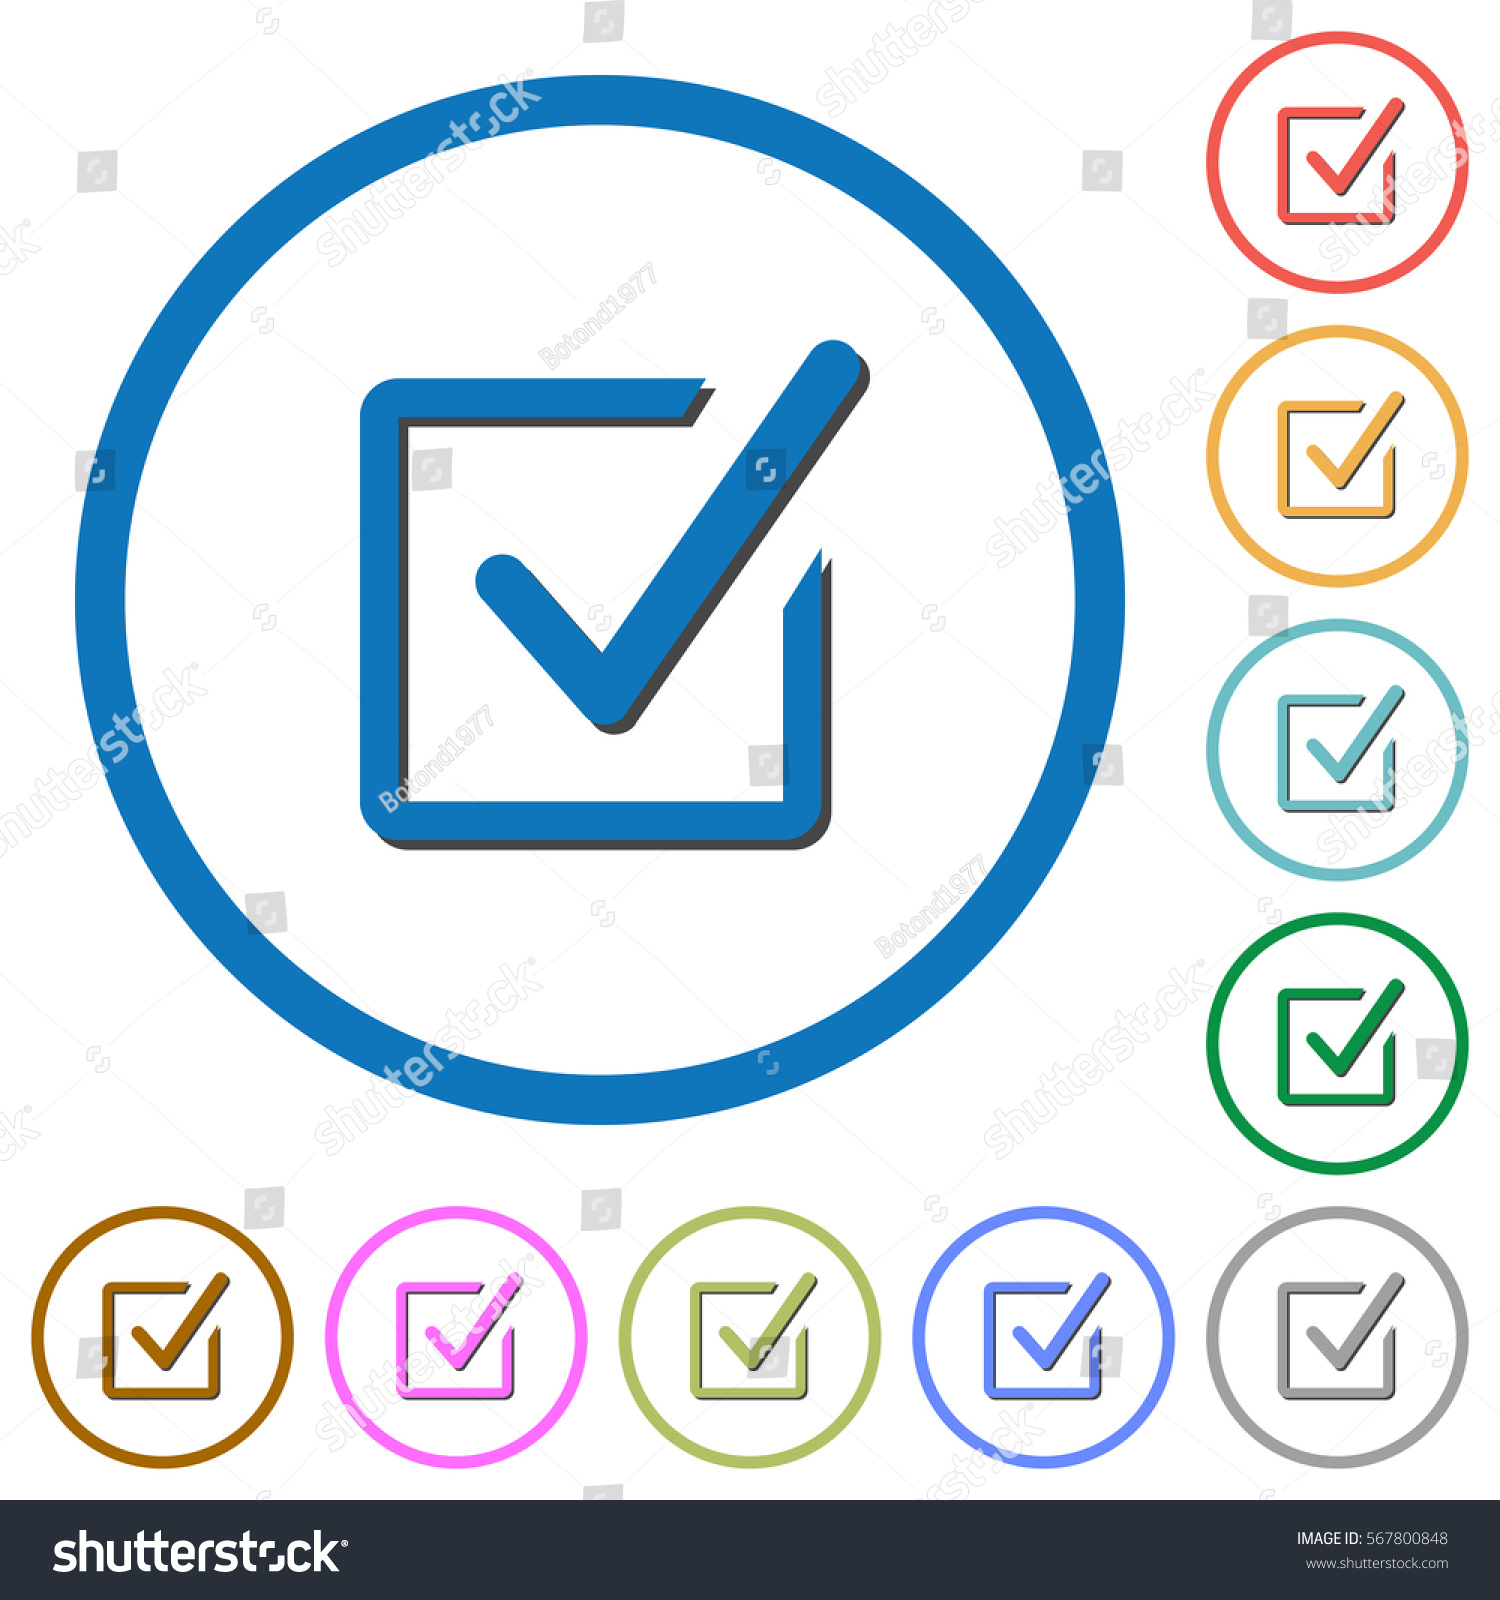 Checked box flat color vector icons stock vector 567800848 checked box flat color vector icons with shadows in round outlines on white background biocorpaavc Gallery